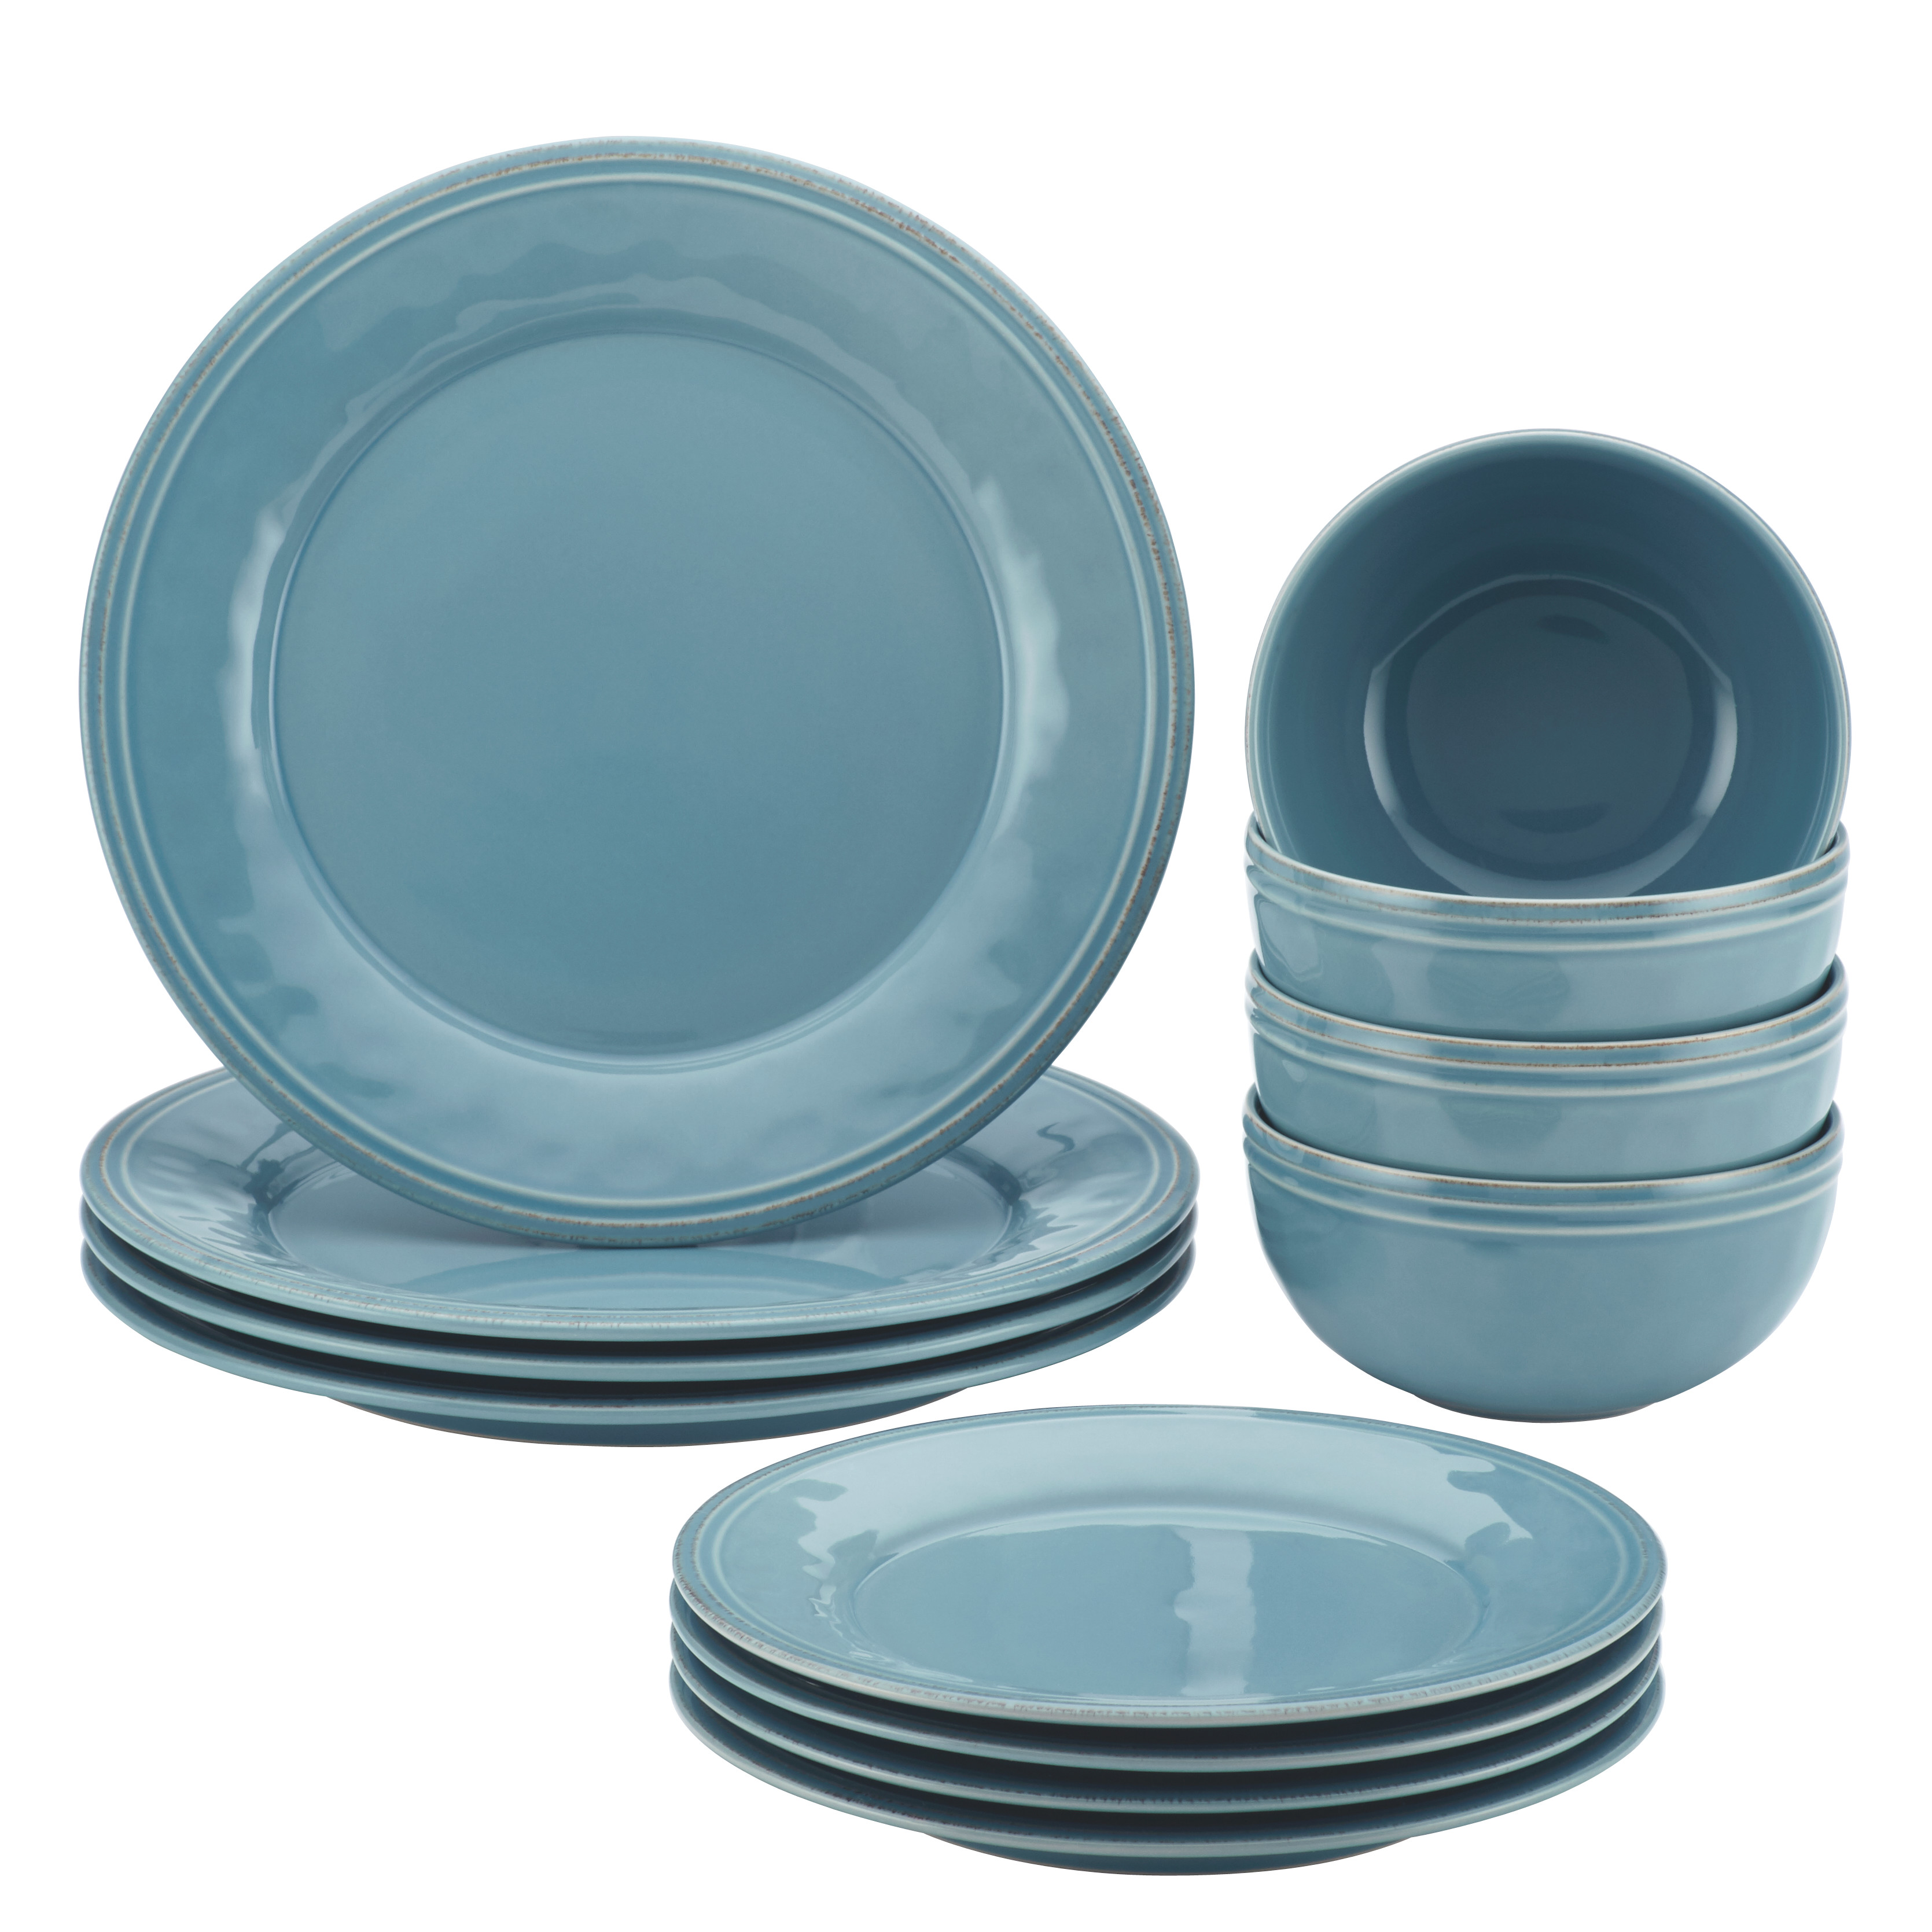 Fascinating stoneware dishes for dinnerware collection with stoneware dishes made in usa